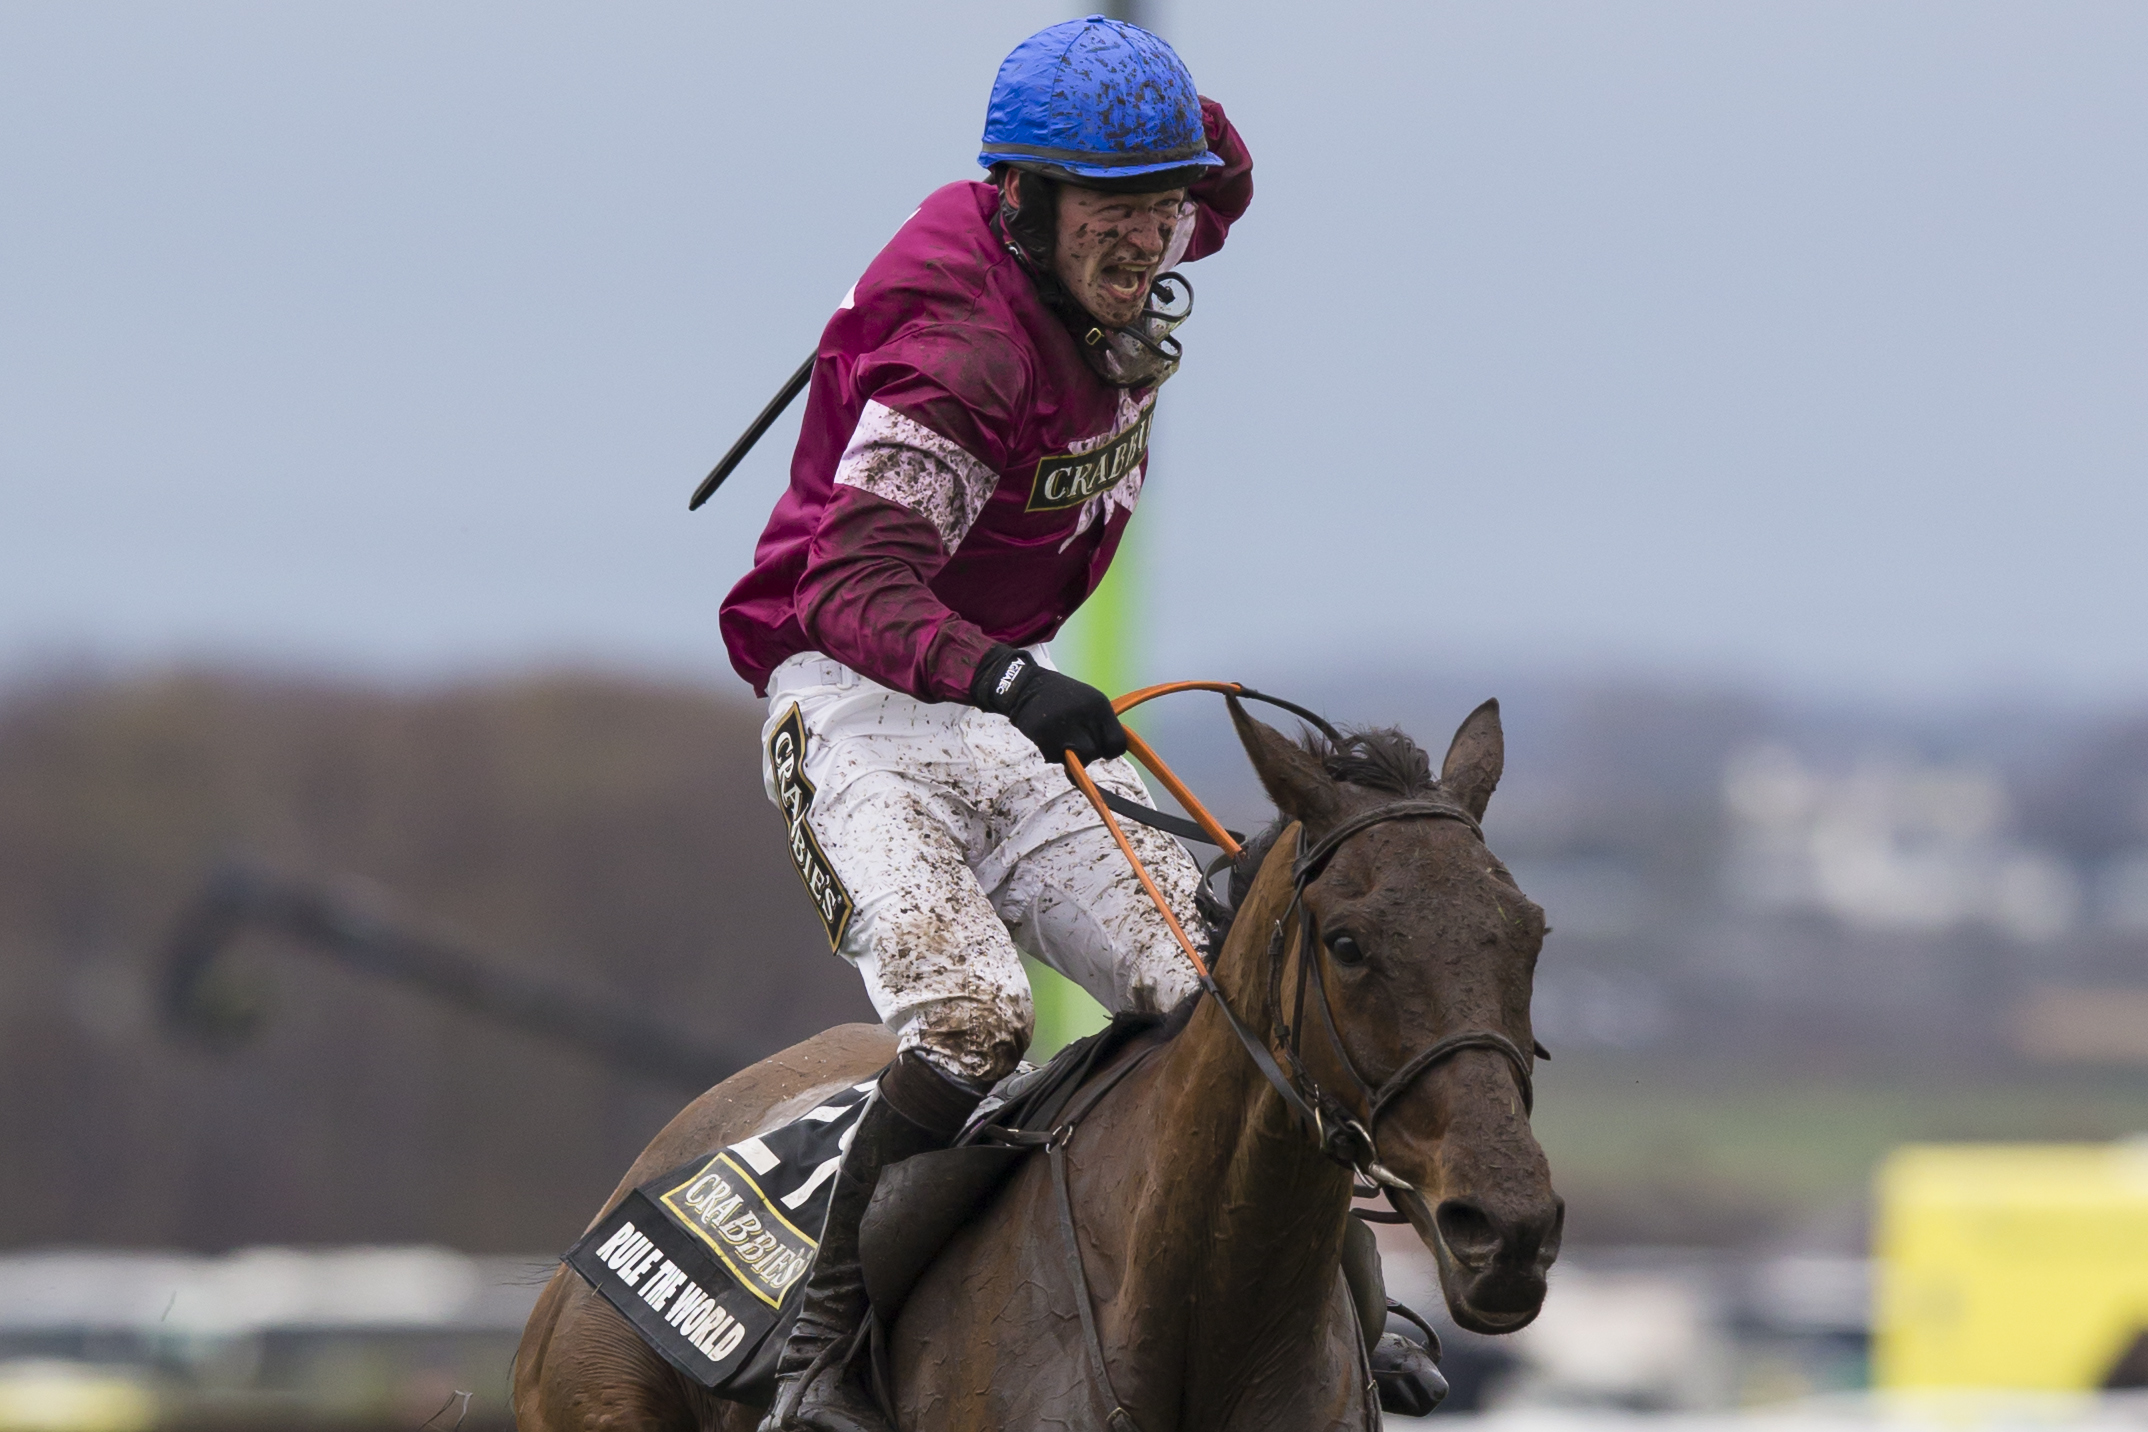 This is a Saturday, April 9, 2016 file photo shows David Mullins as he celebrates victory on Rule The World in the Grand National horse race at Aintree Racecourse in Liverpool, England. (AP Photo/Jon Super)